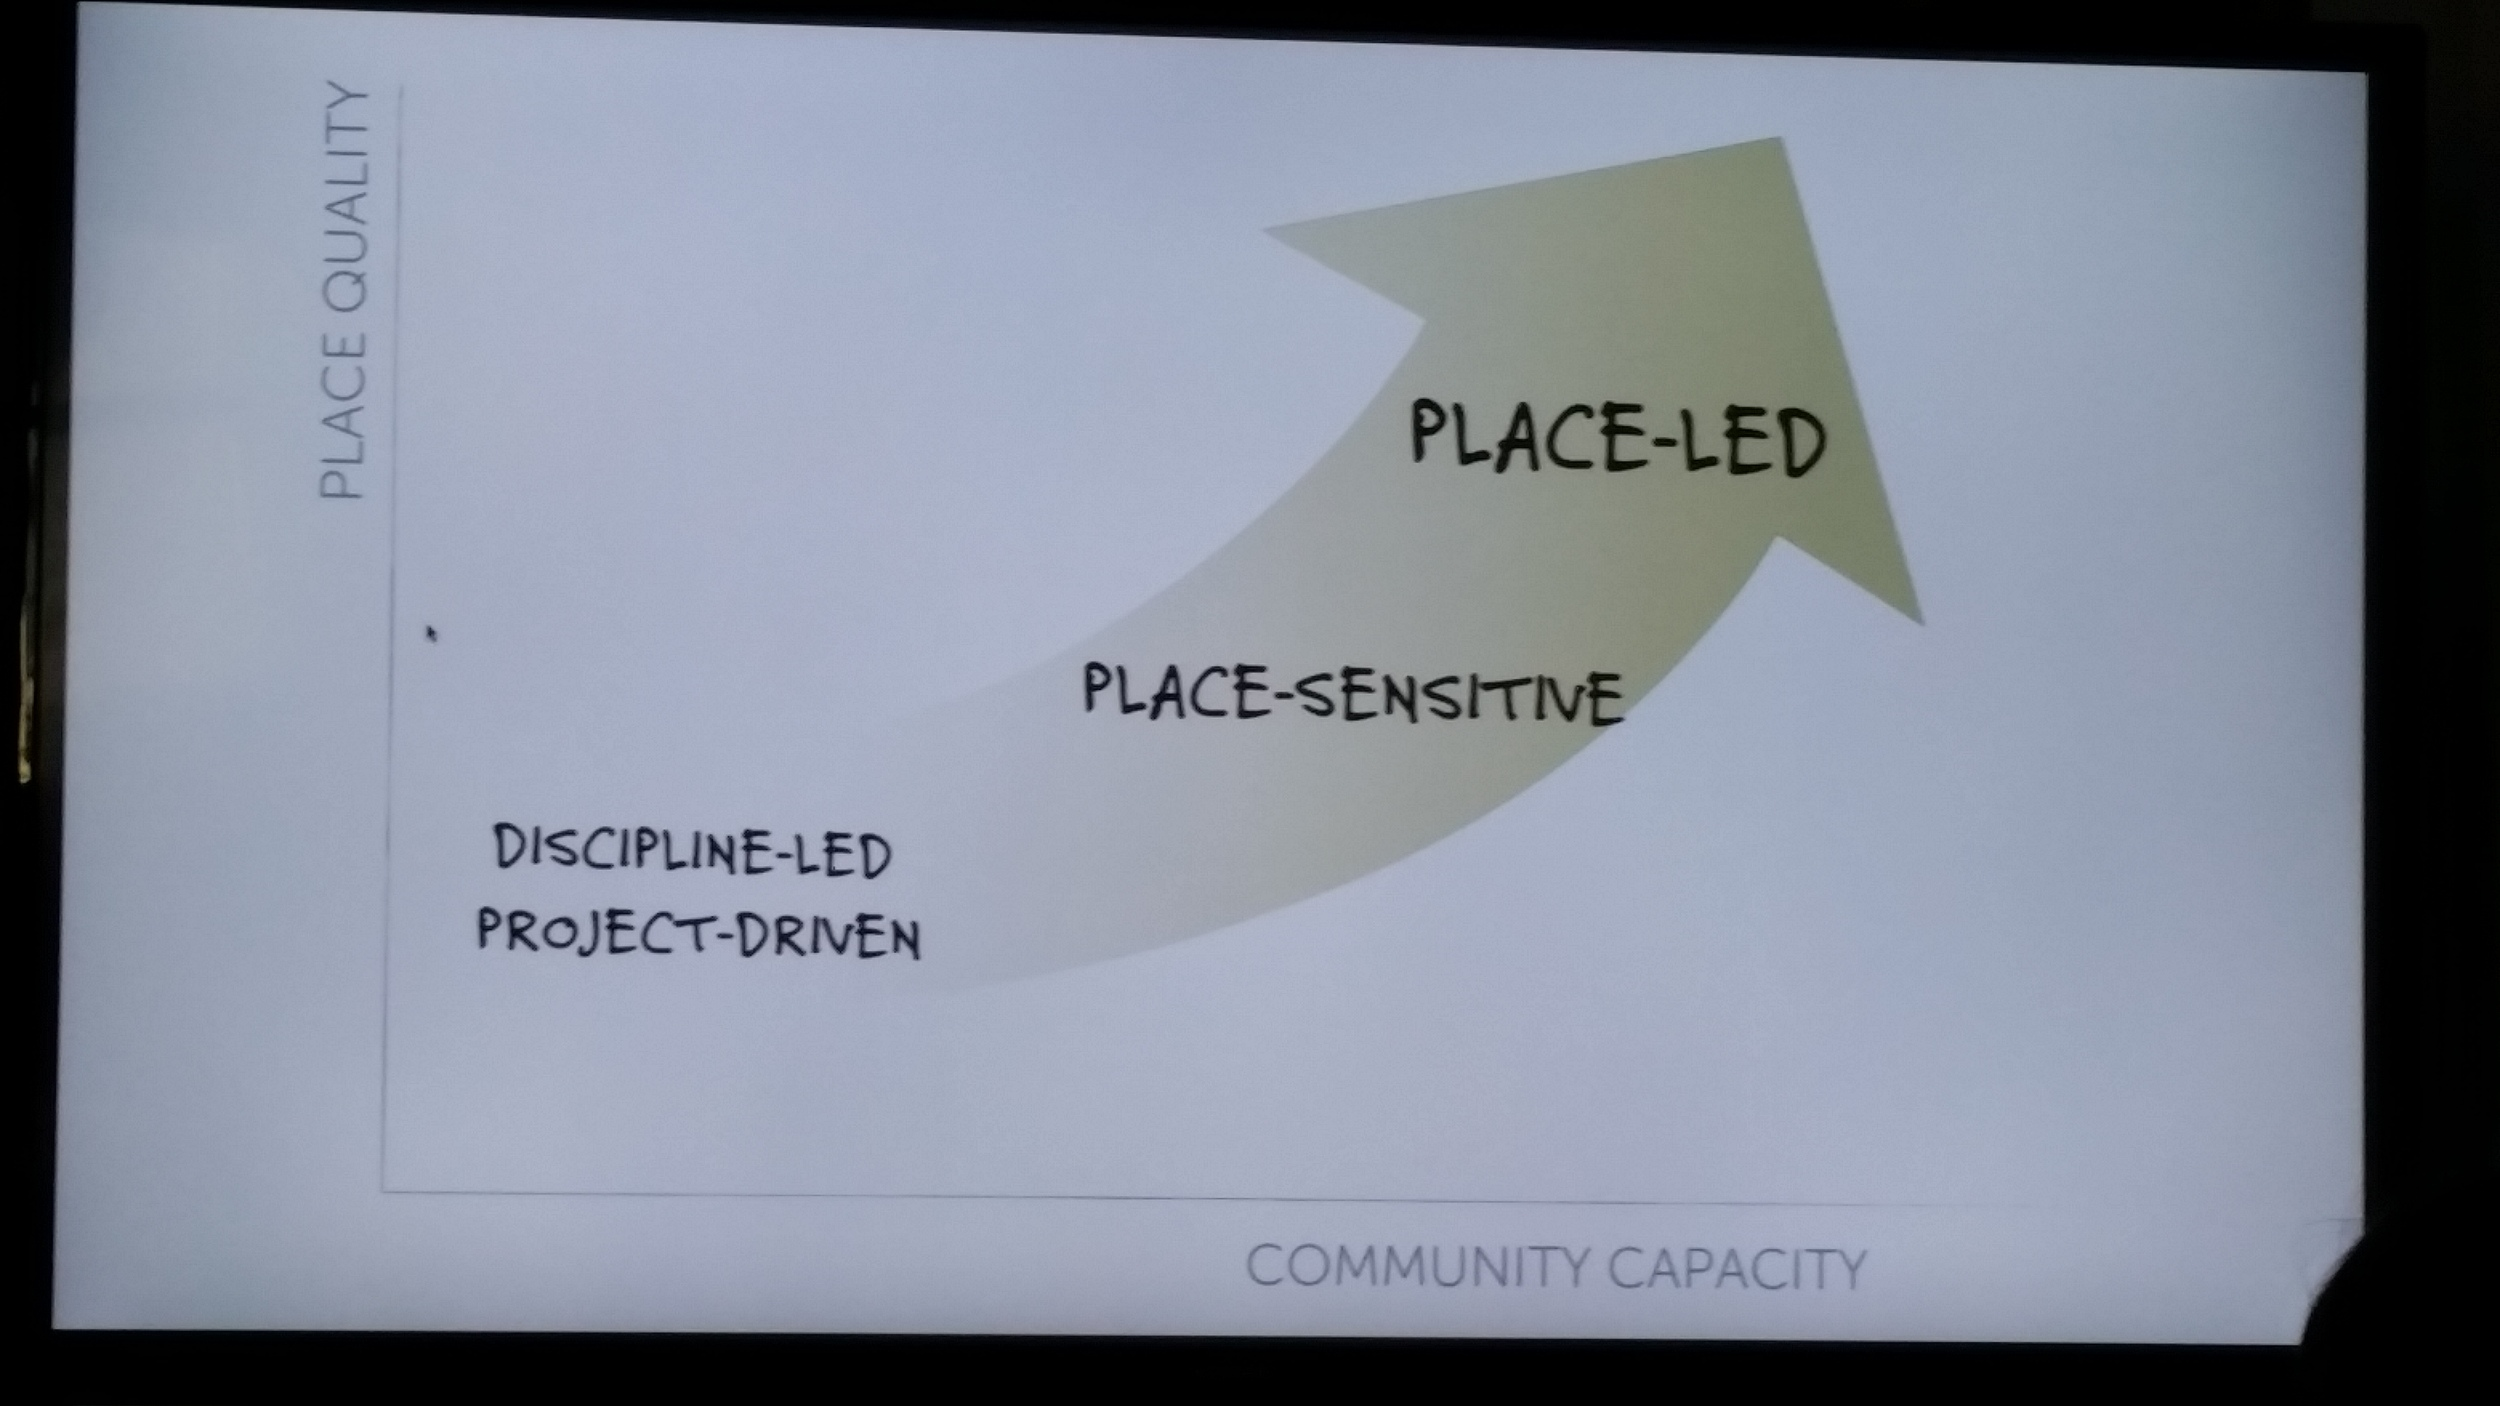 One of Fred Kent's slides suggesting that we get better places when we take our cues from the community. Chaotic but smart.